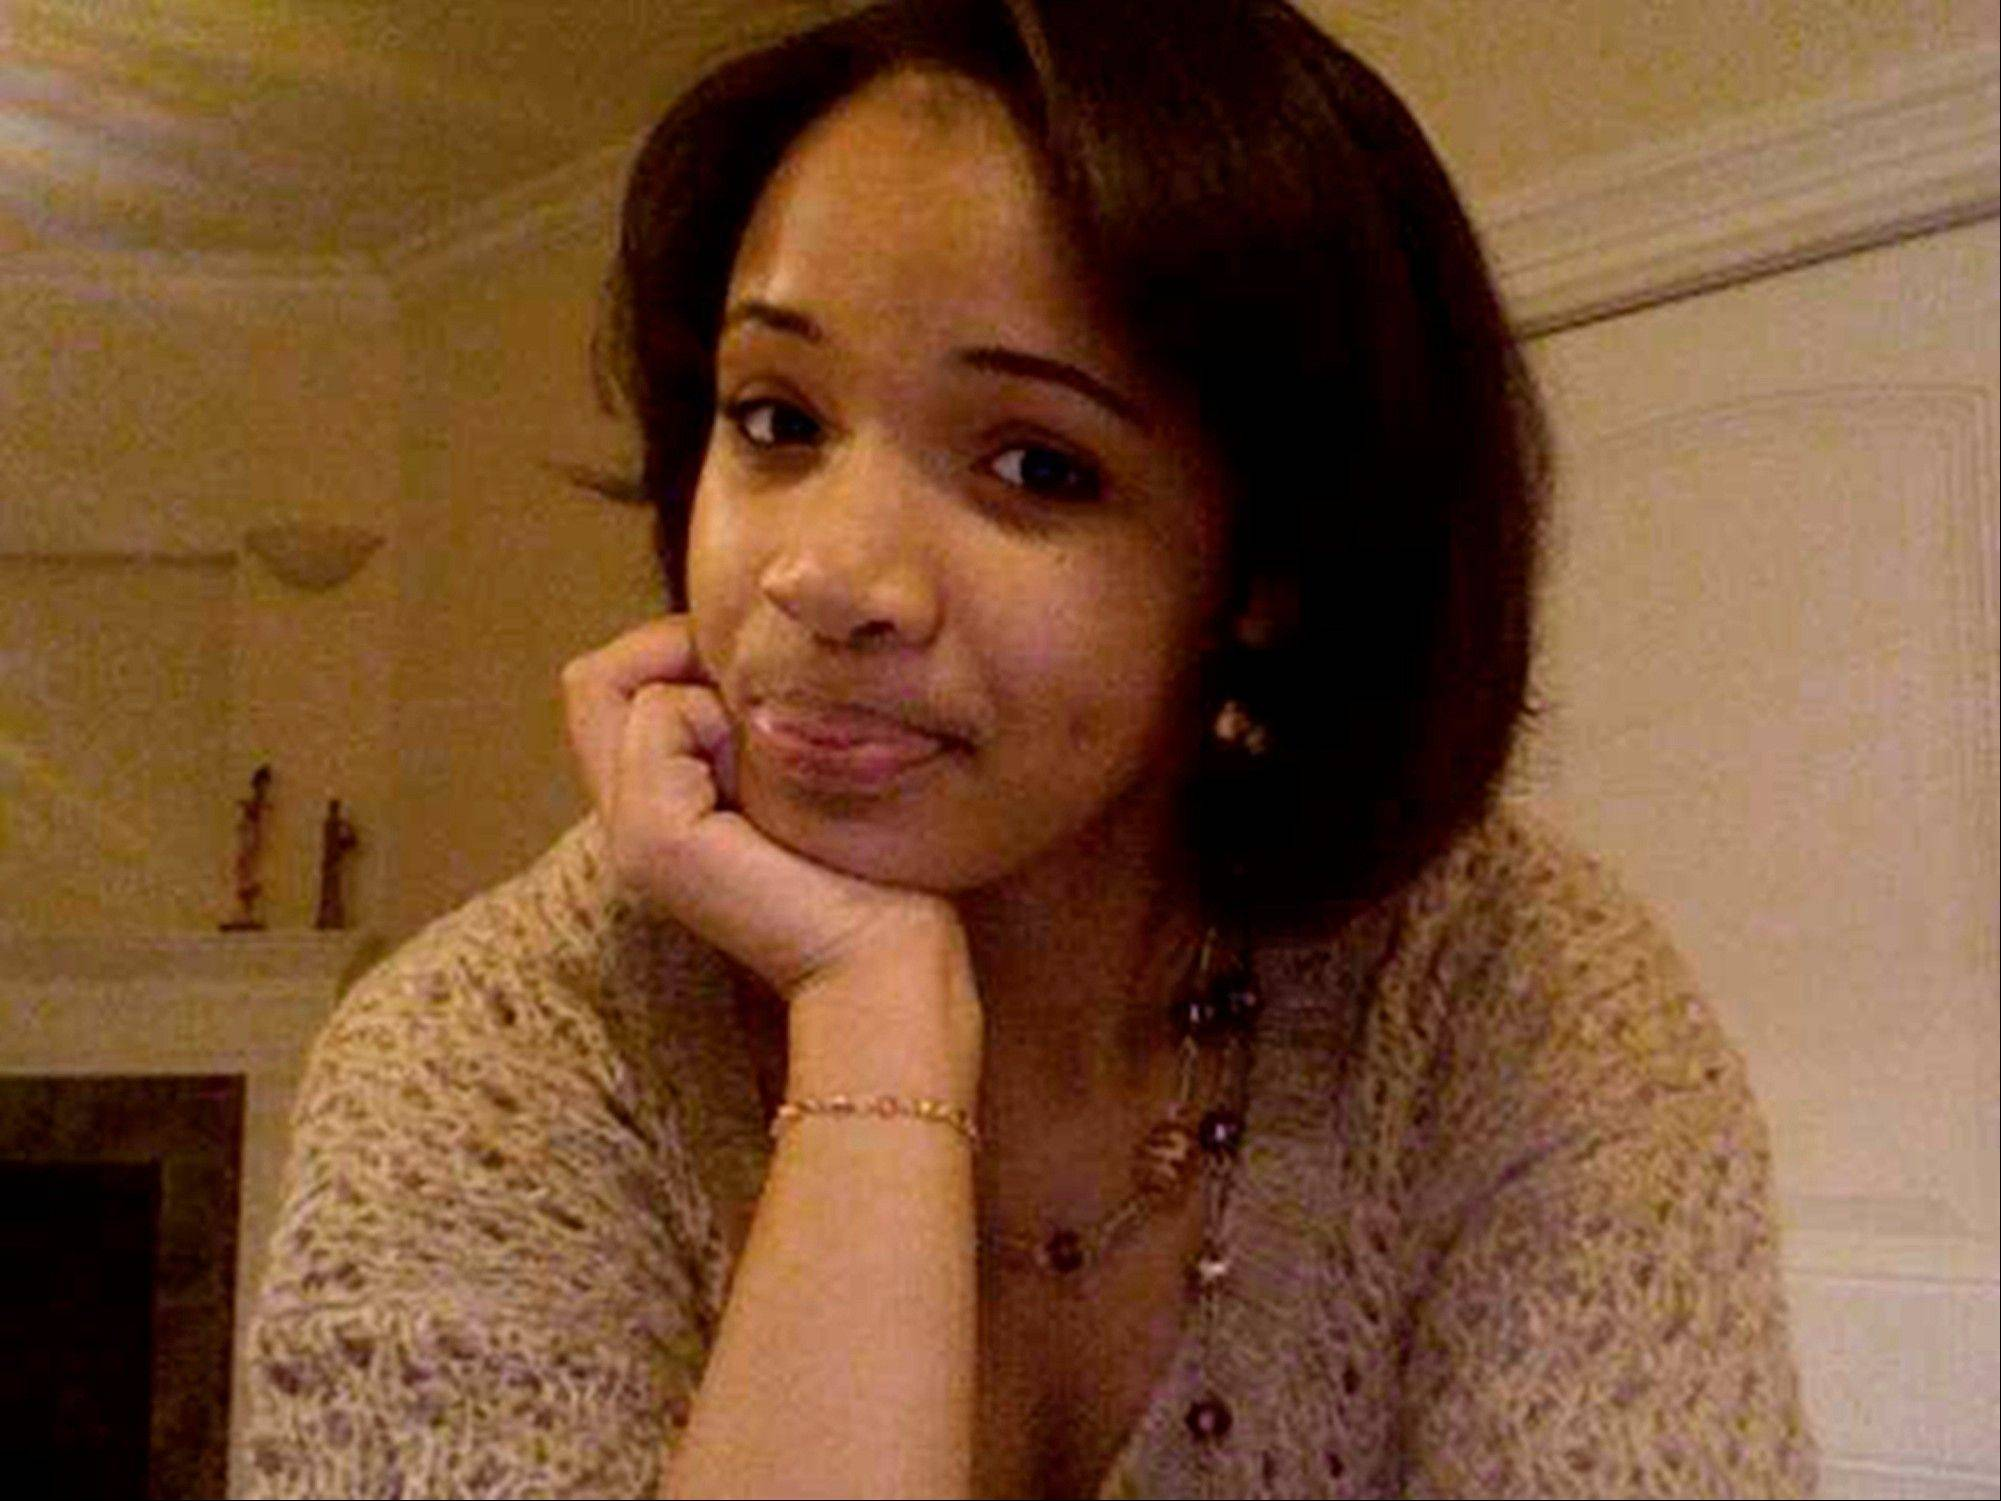 Hadiya Pendleton, 15, was shot to death Jan. 29 in a Chicago park.